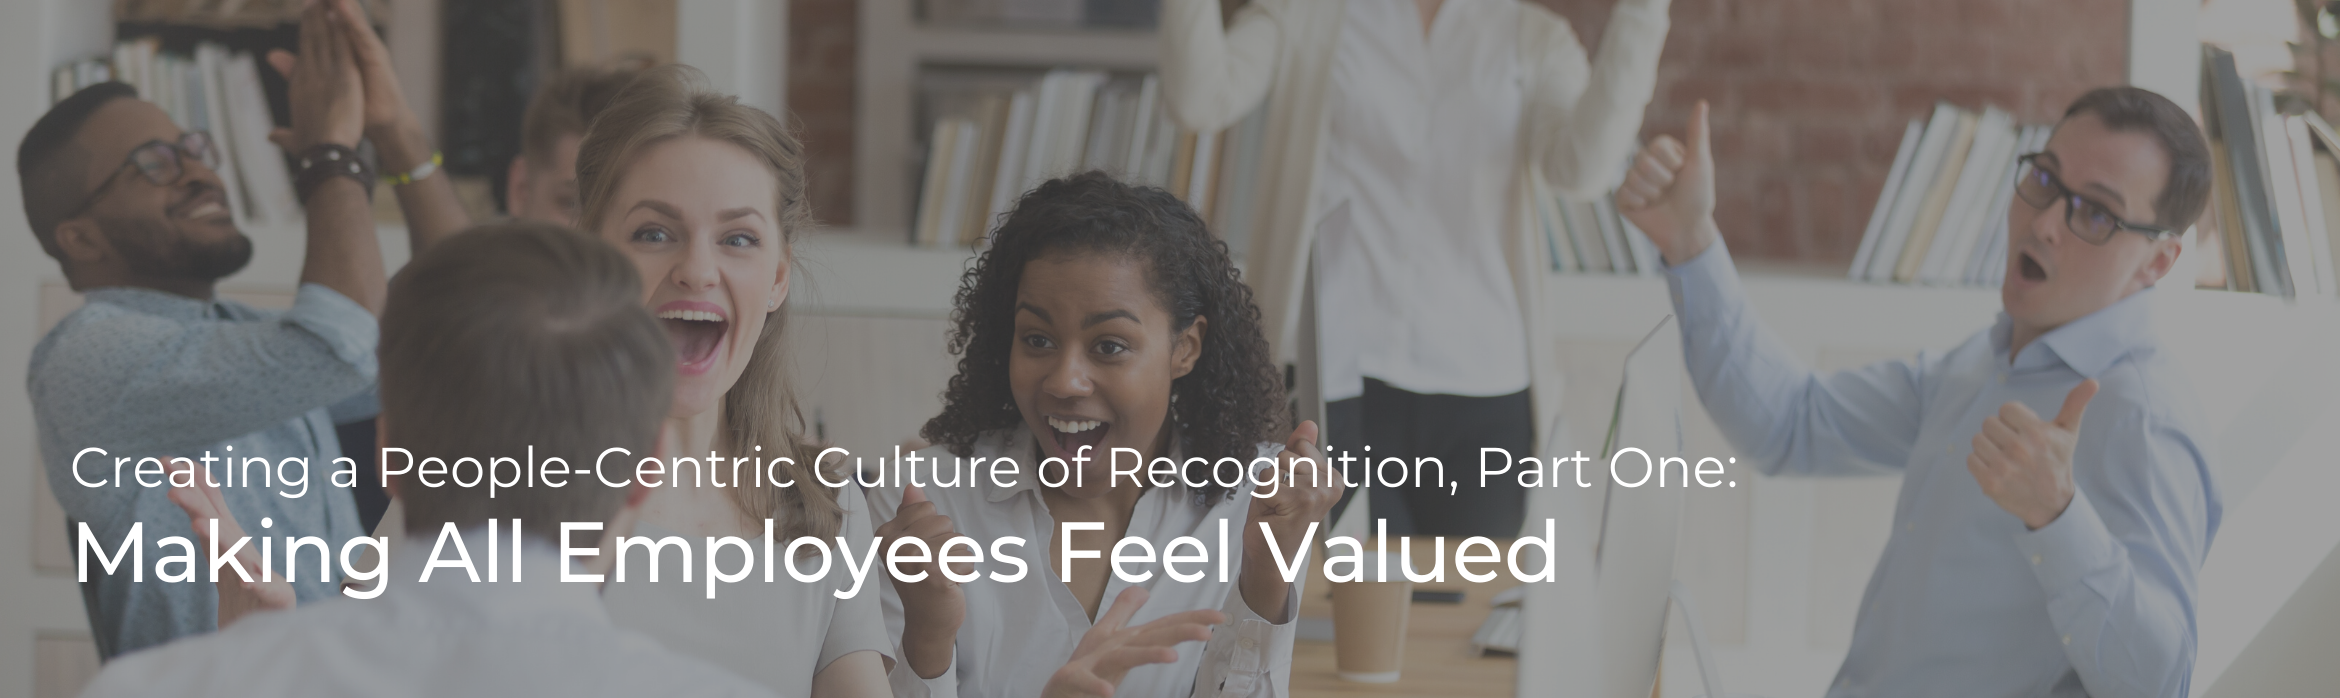 Creating a People-Centric Culture of Recognition: Part Two – Decentralized, Personal Recognition